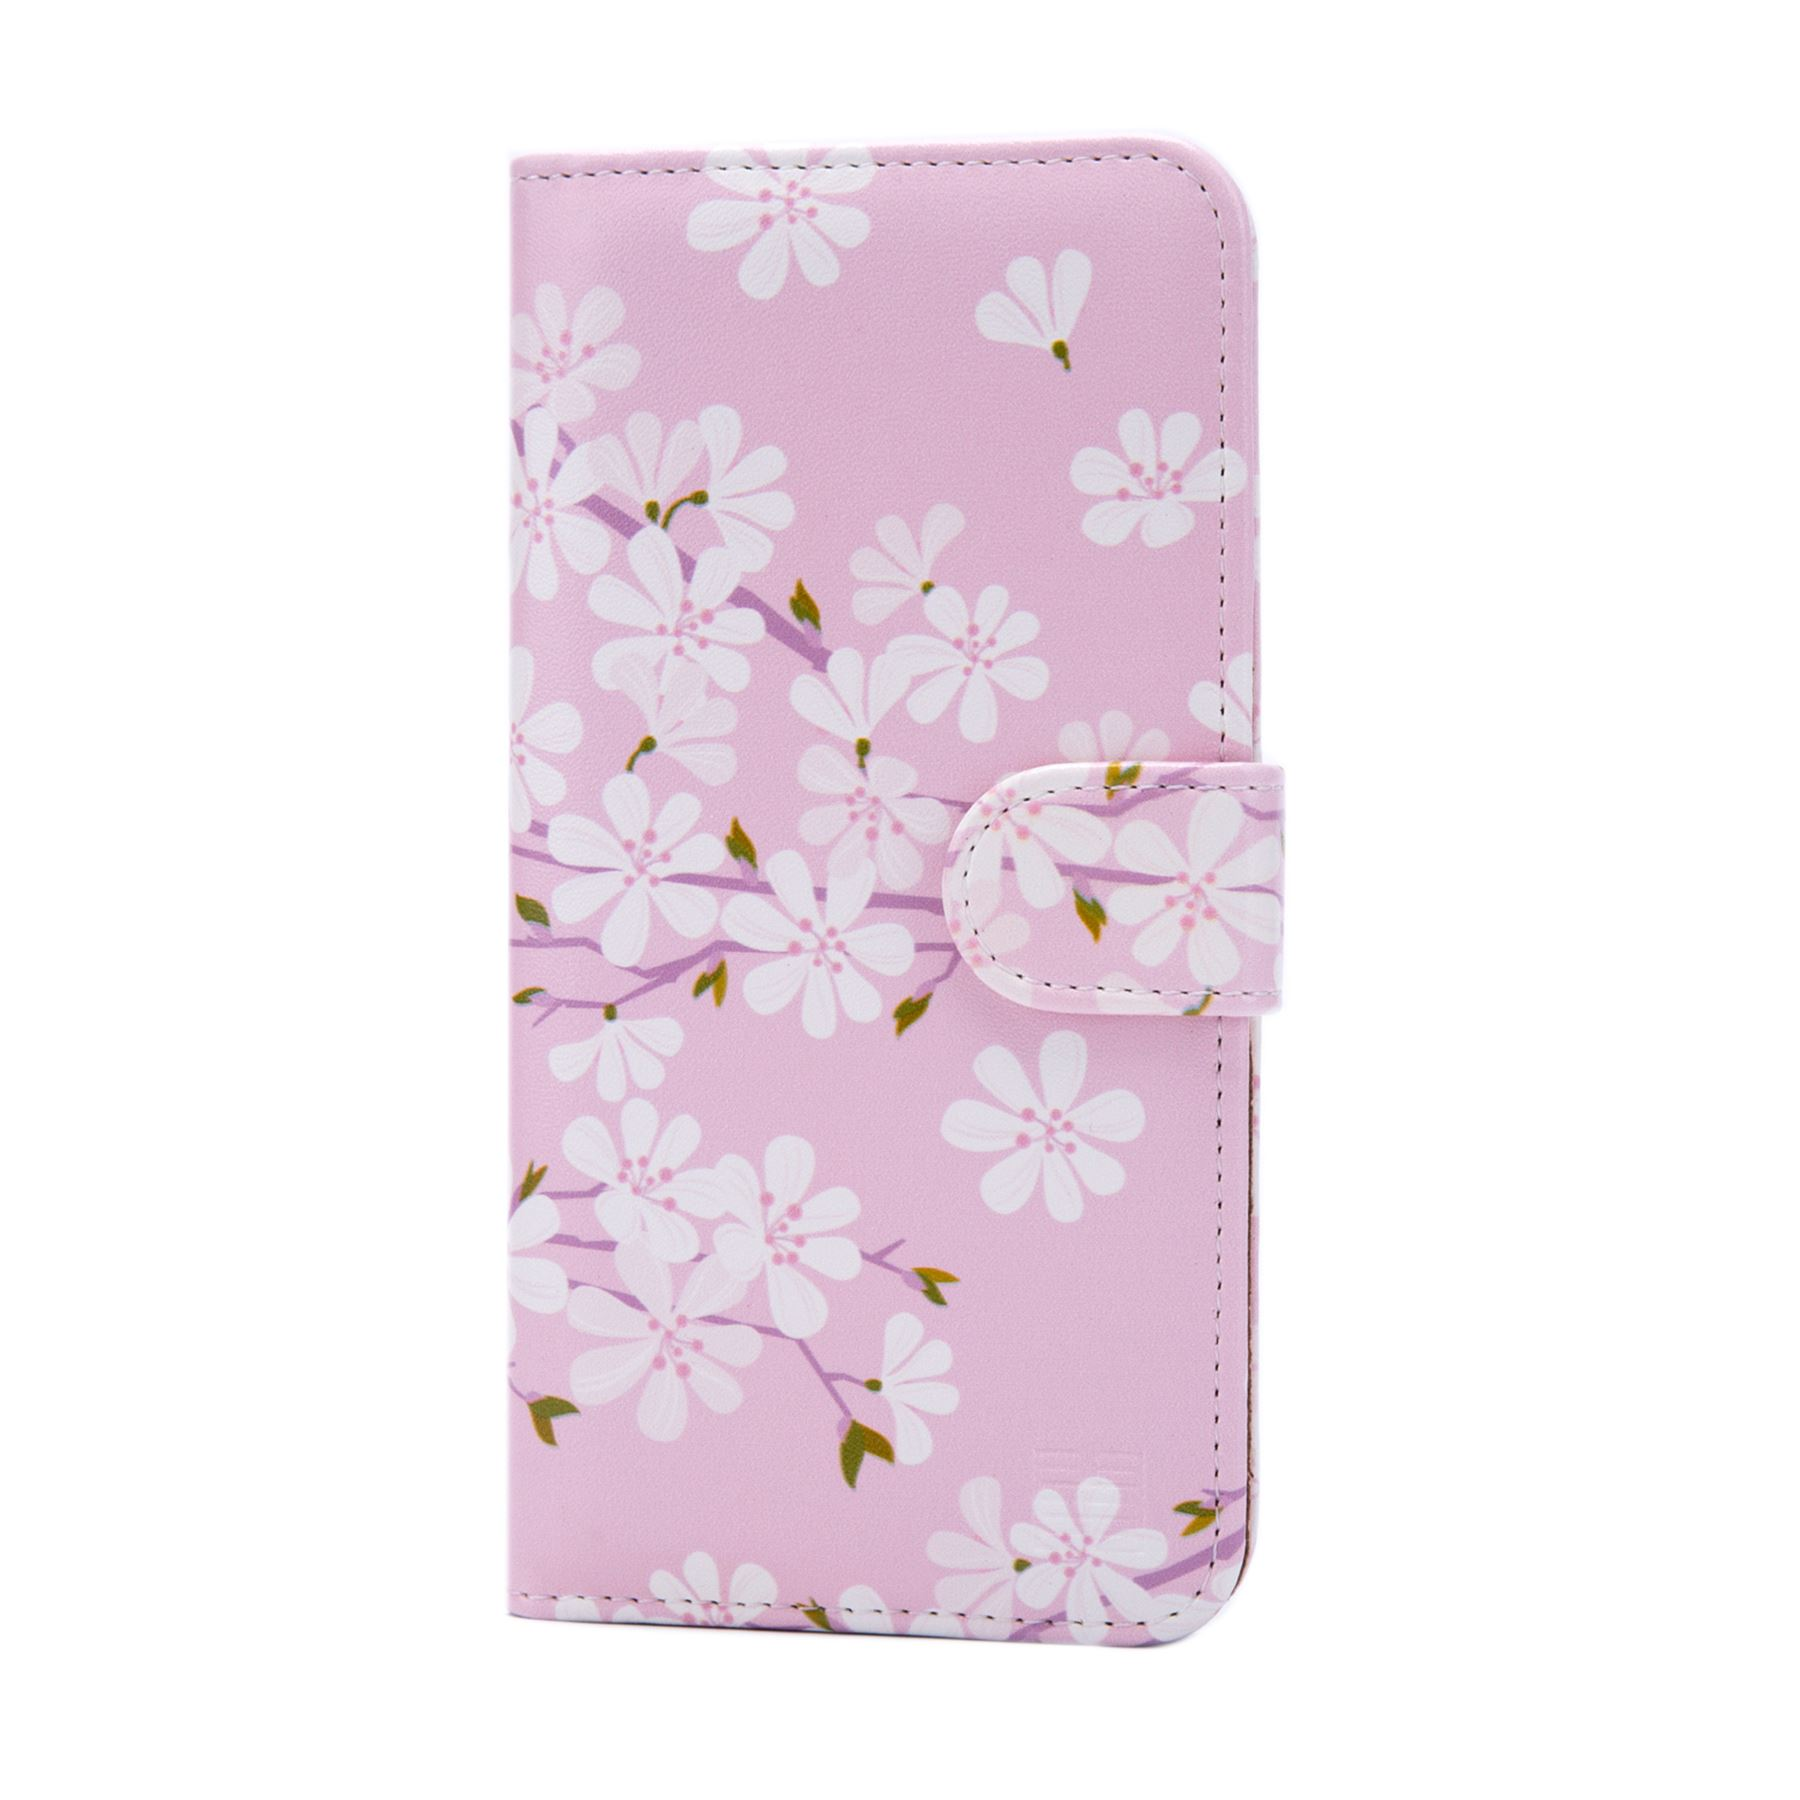 PU-Leather-Floral-Design-Book-Wallet-Case-Cover-For-Google-Pixel thumbnail 8